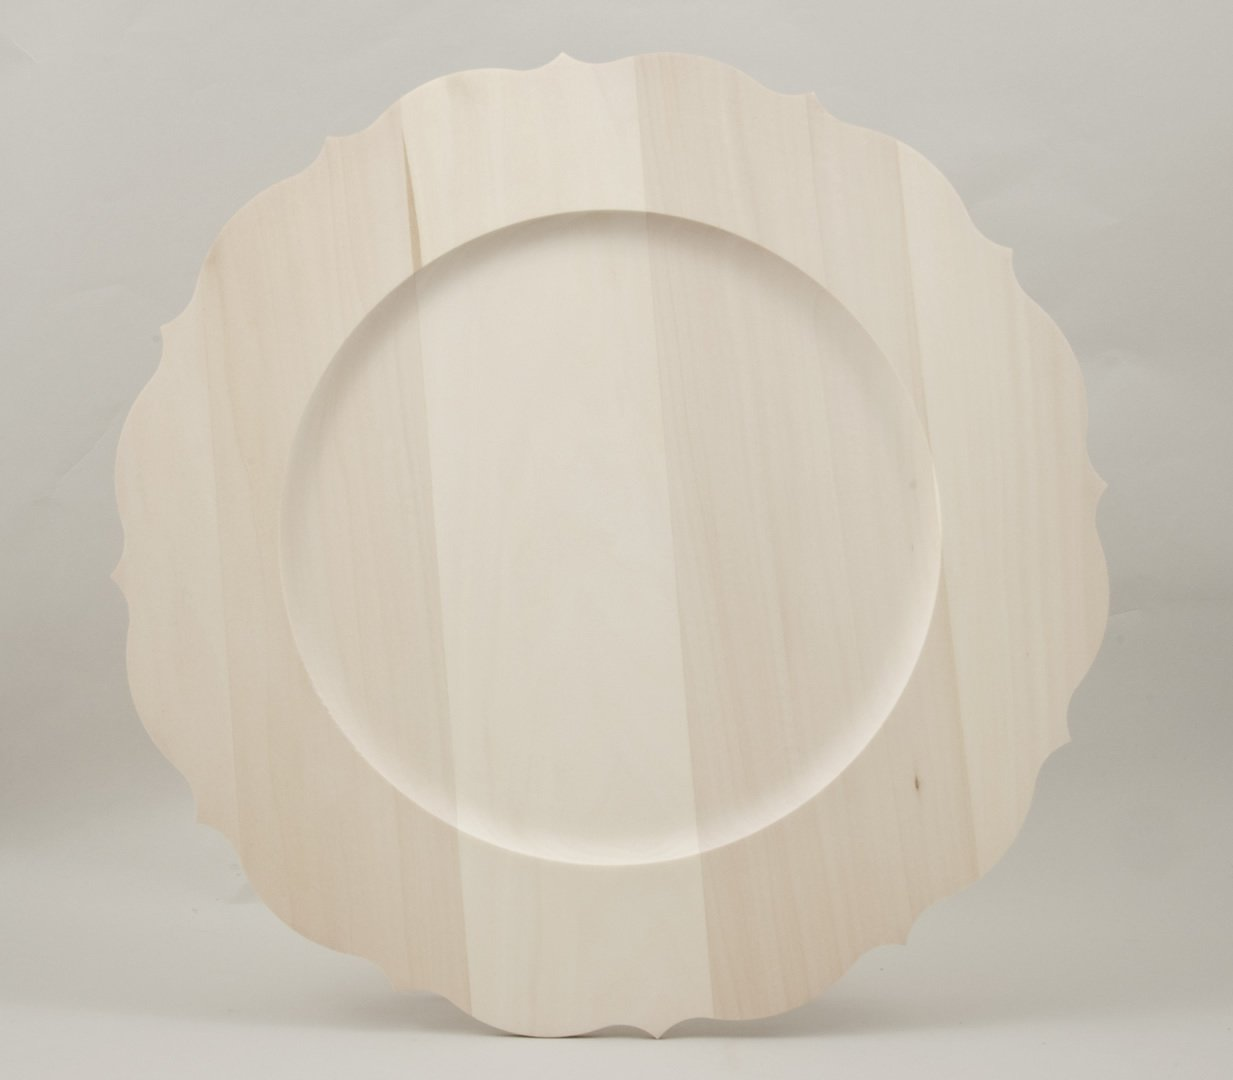 Flat Basswood Plates with Rim and Scalloped Edge 8""